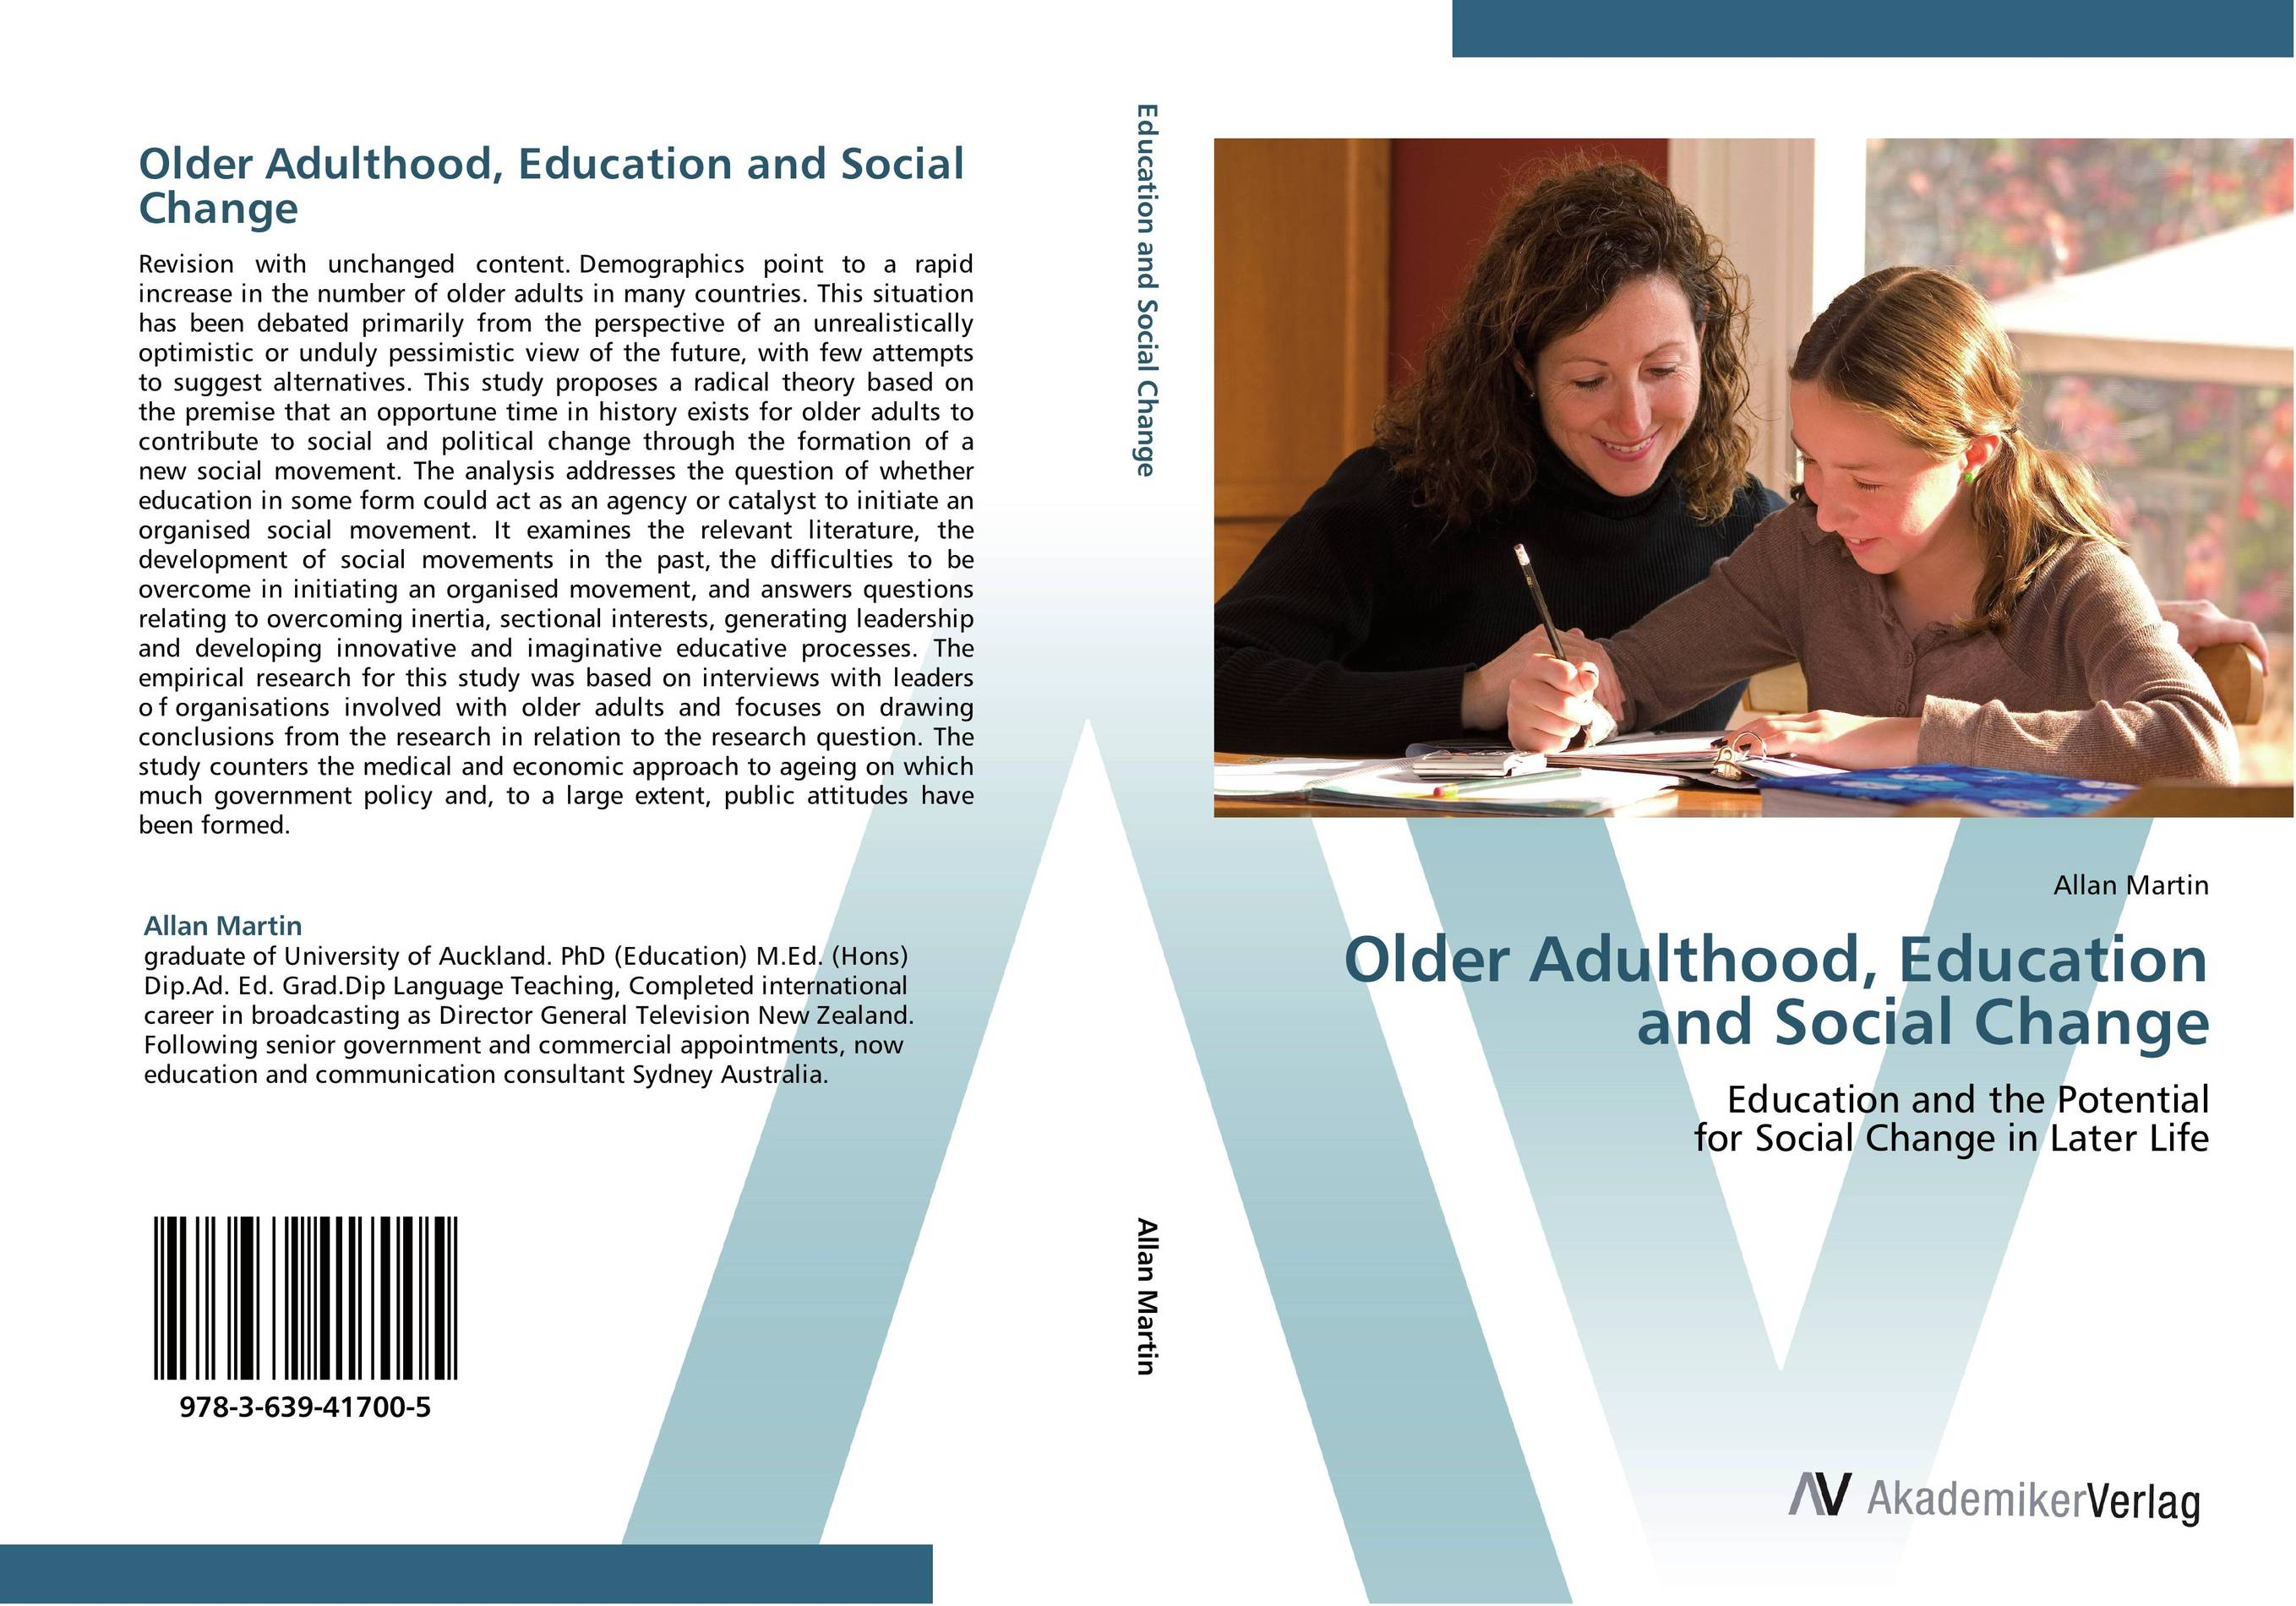 Older Adulthood, Education and Social Change lucie baker and eyal gringart body image in older adulthood